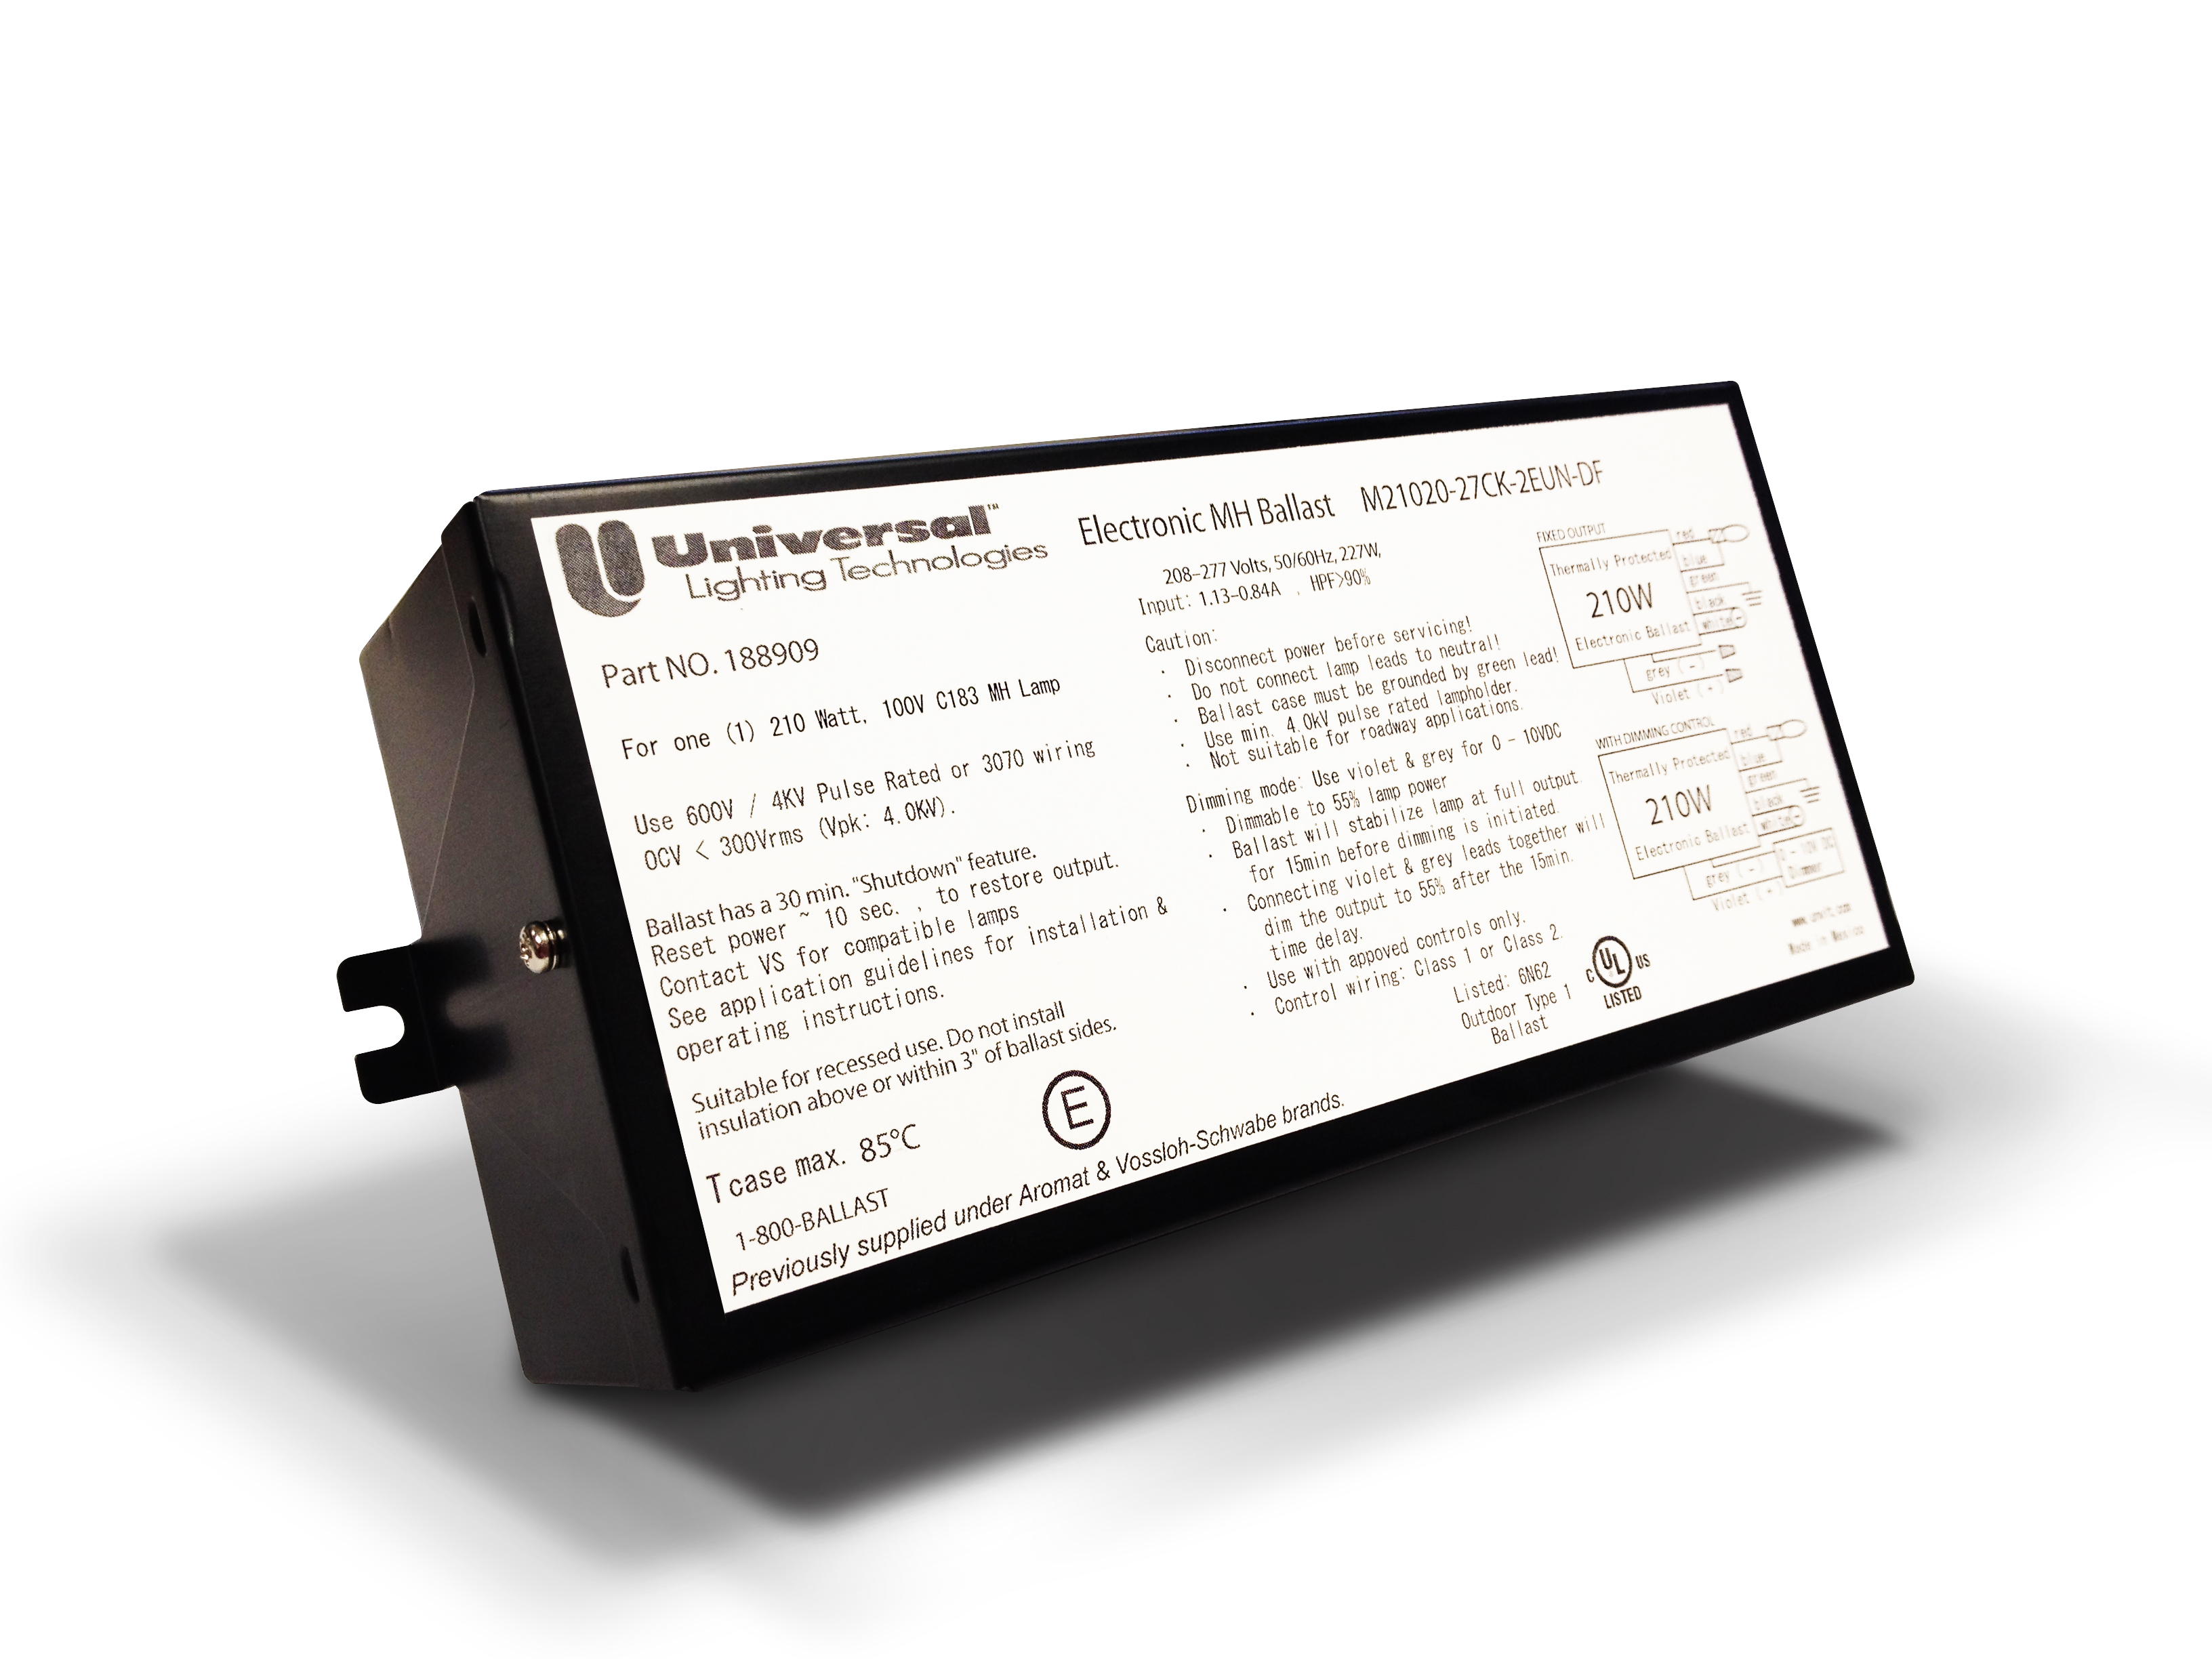 Universal Lighting Technology 150W Electronic MH Ballast     Part No 188638.05